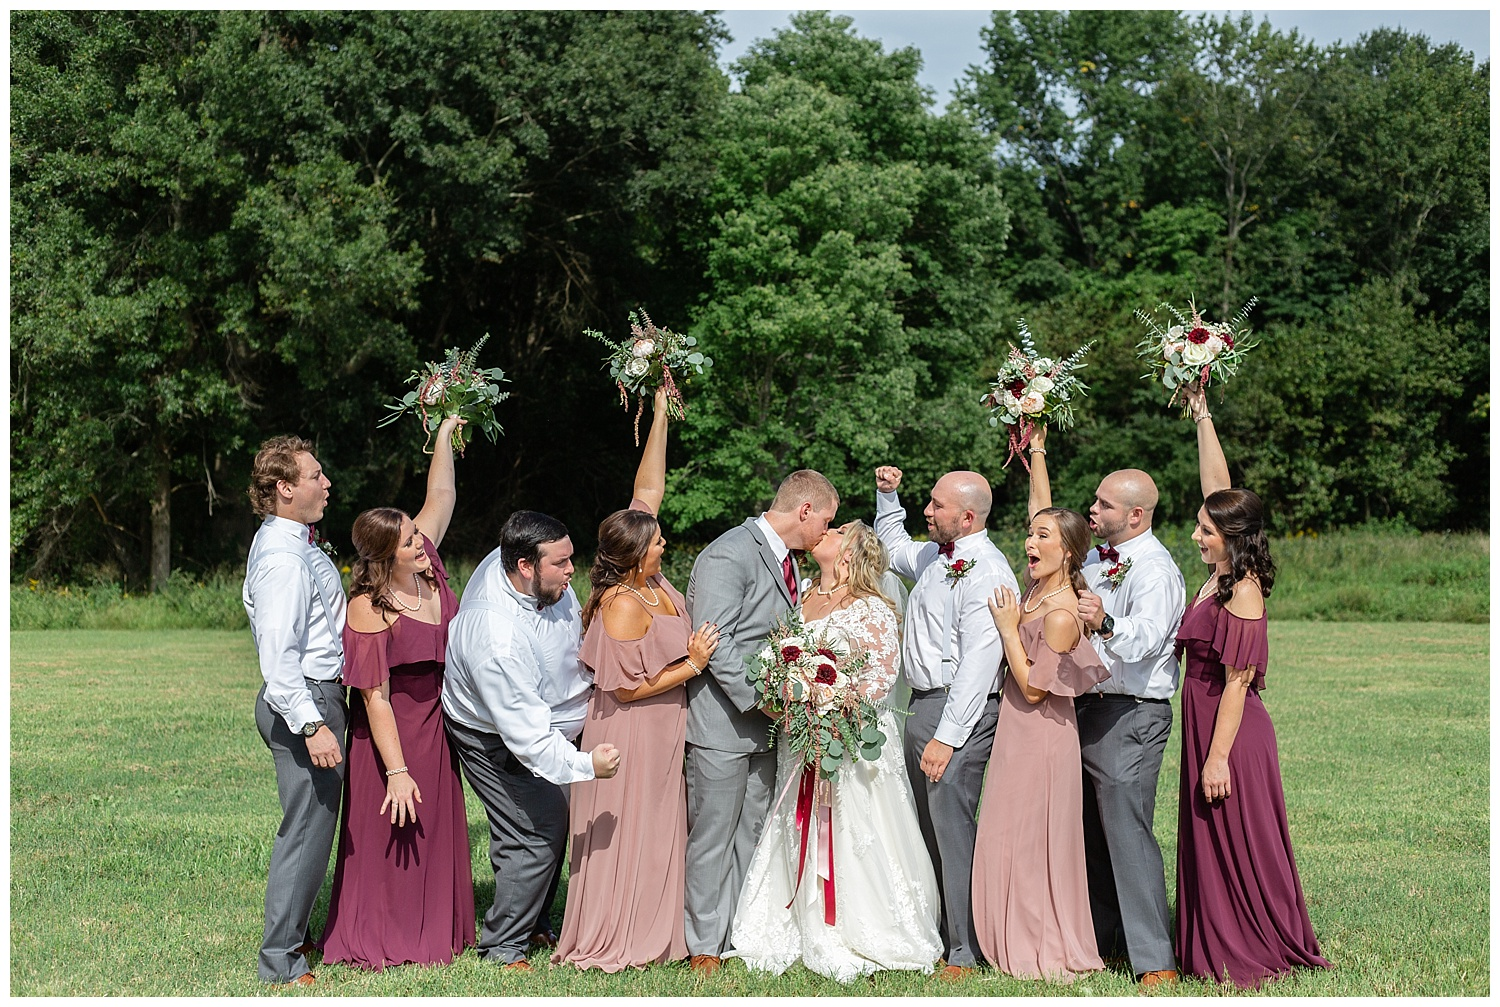 emily-belson-photography-easter-shore-wedding-031.jpg